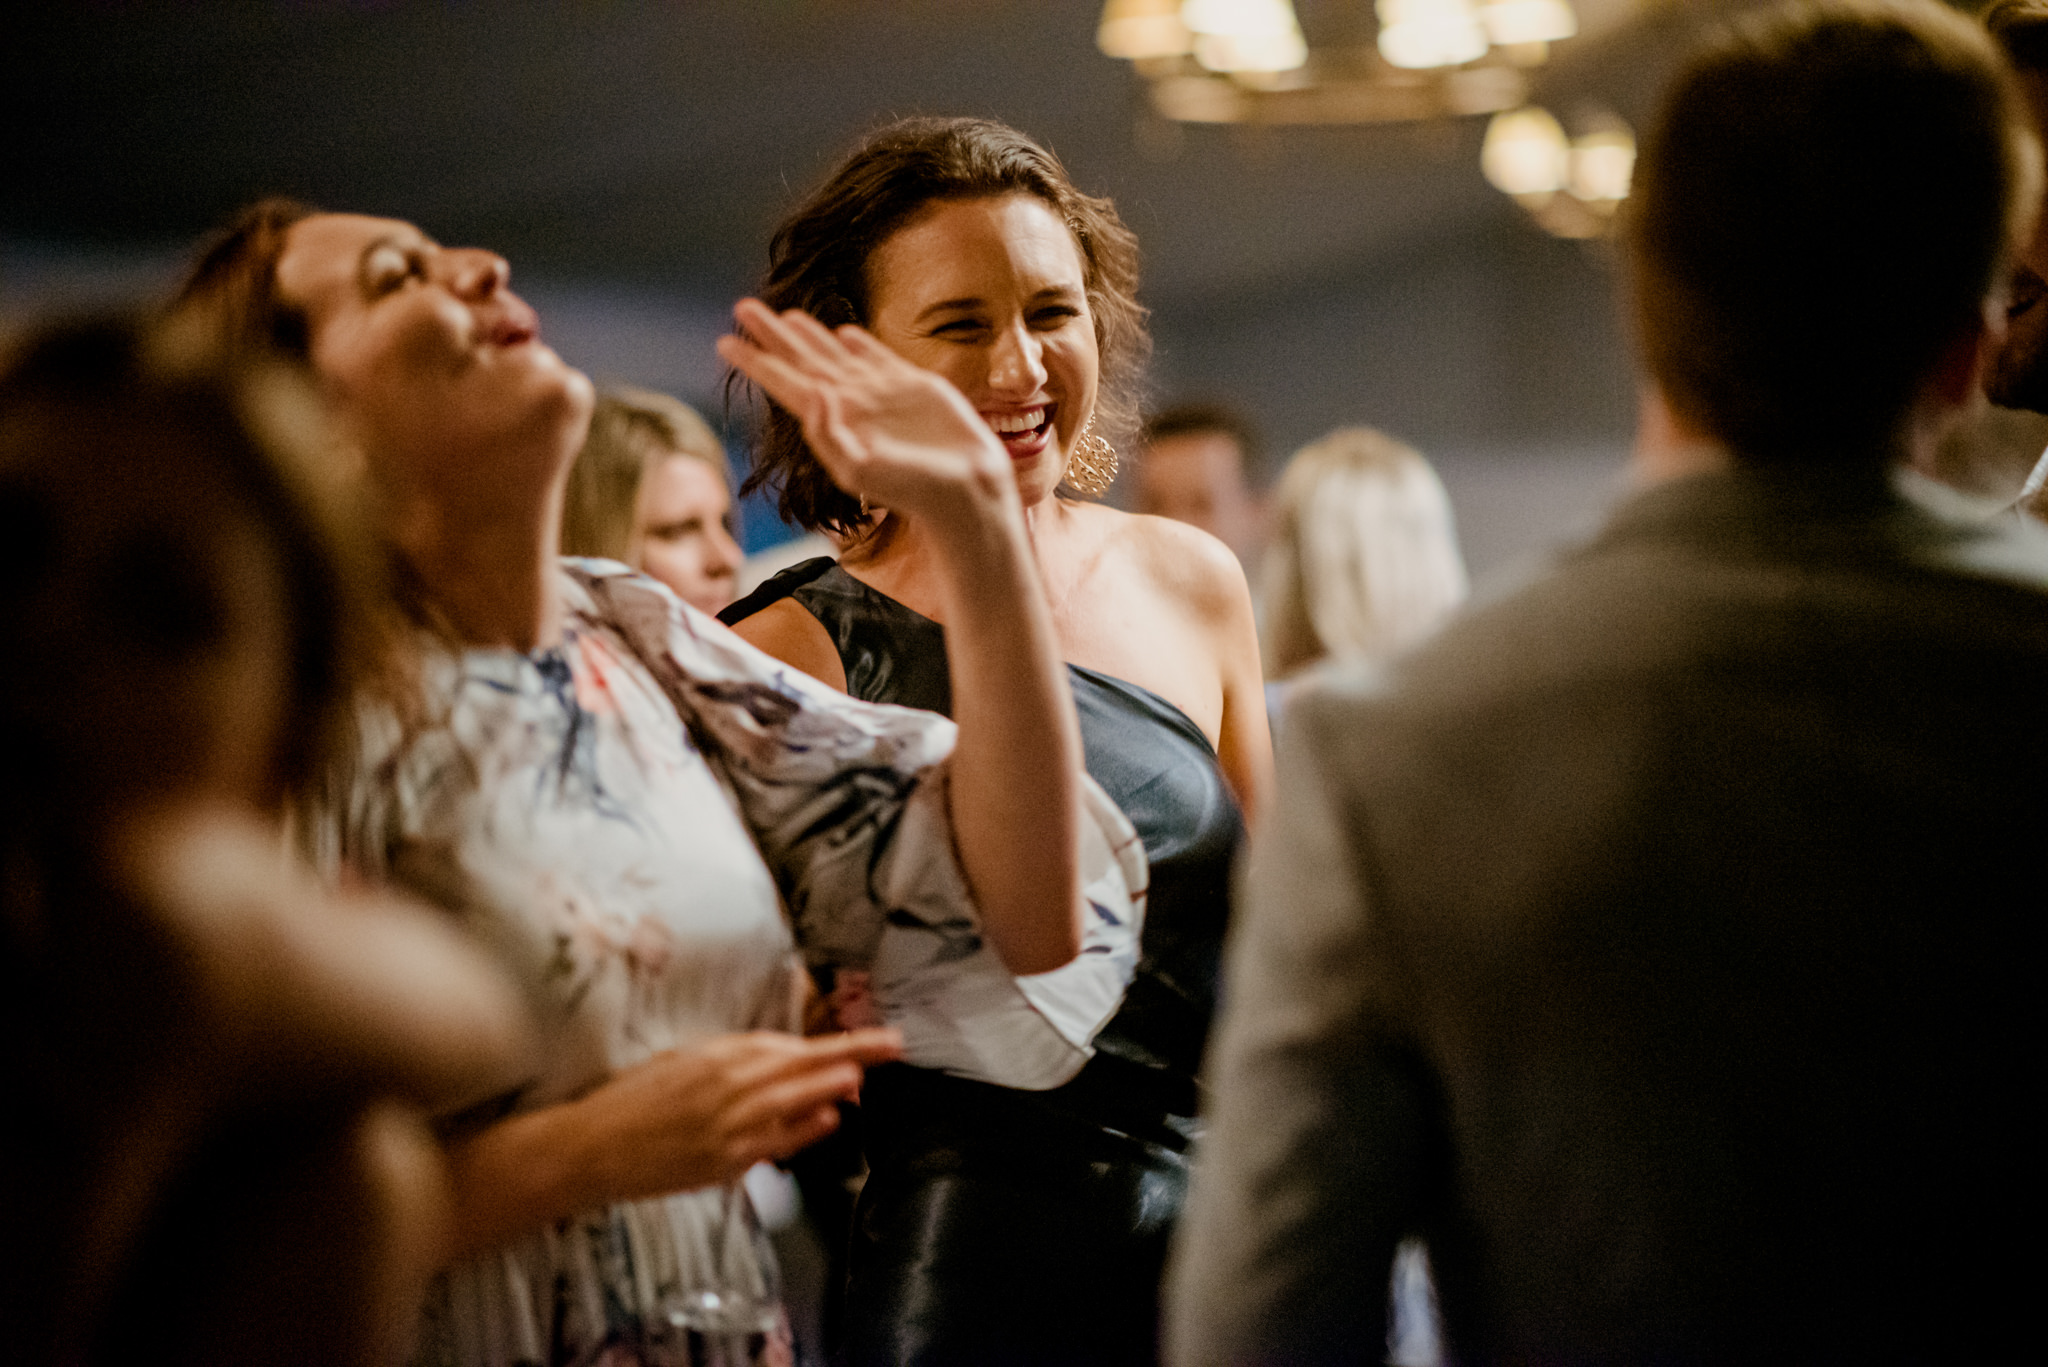 Woman laughing dancing with other people